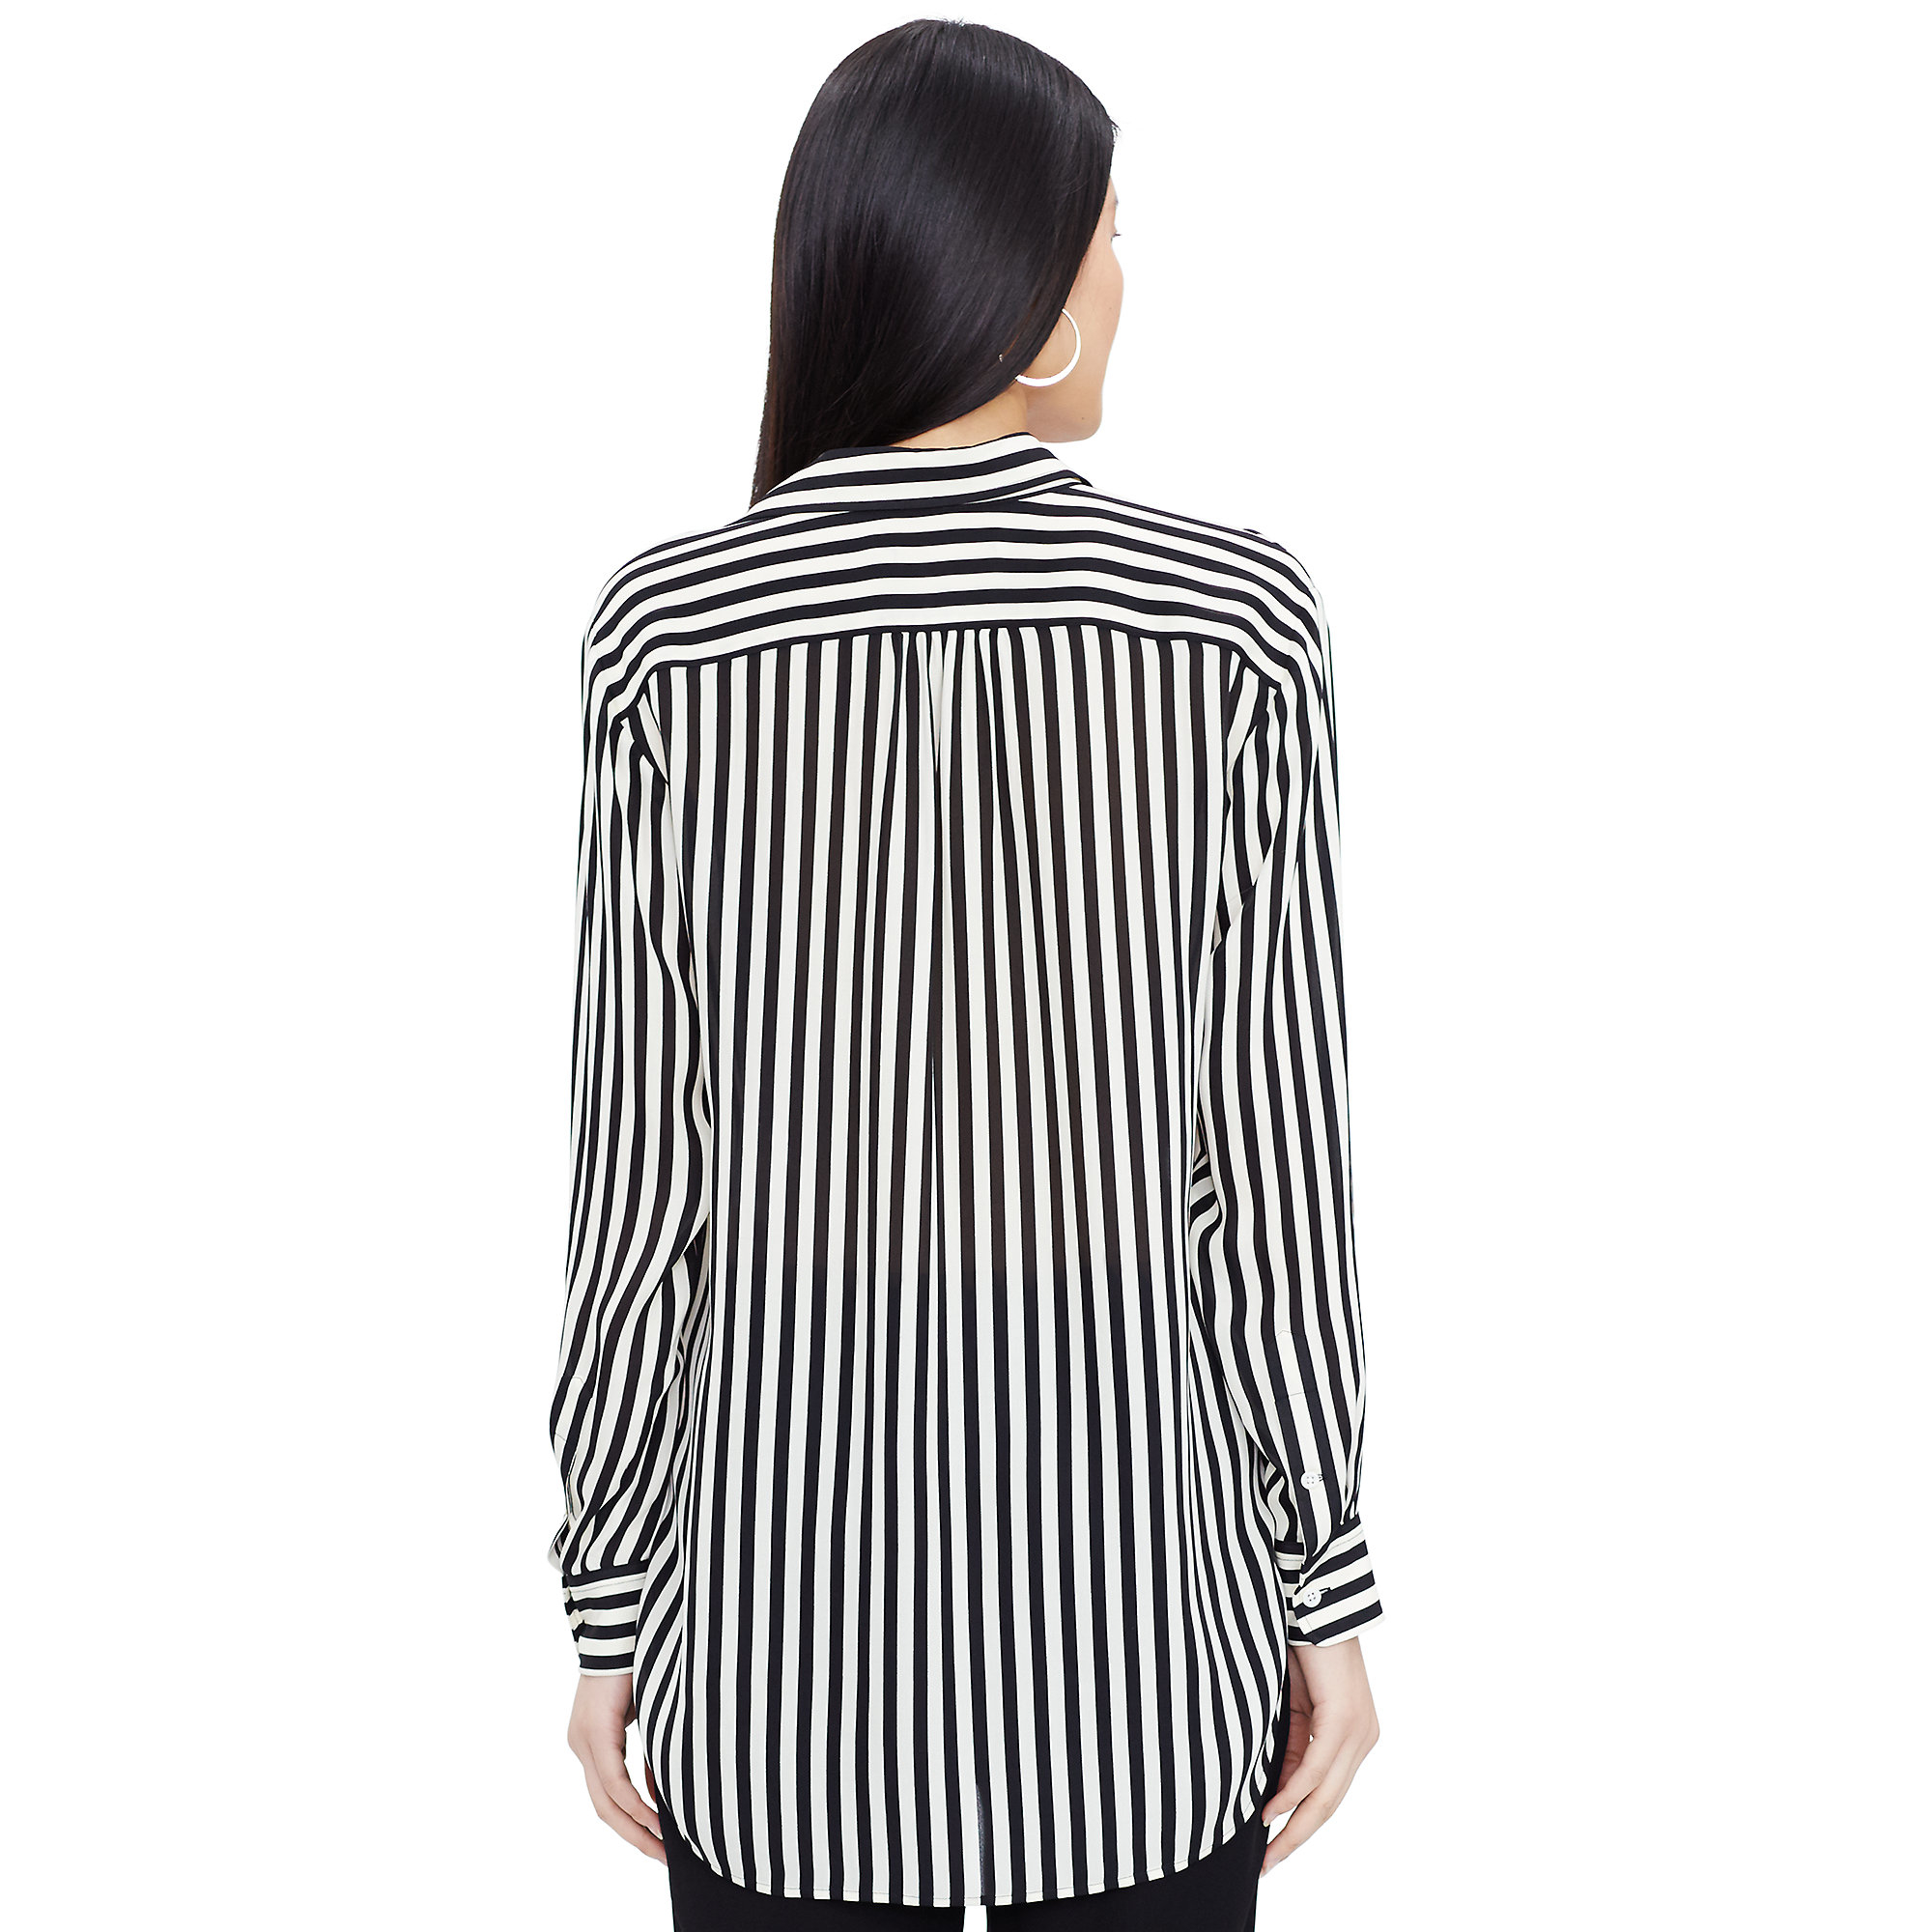 2cad24837 Polo Ralph Lauren Striped Silk Button-down Shirt in Black - Lyst